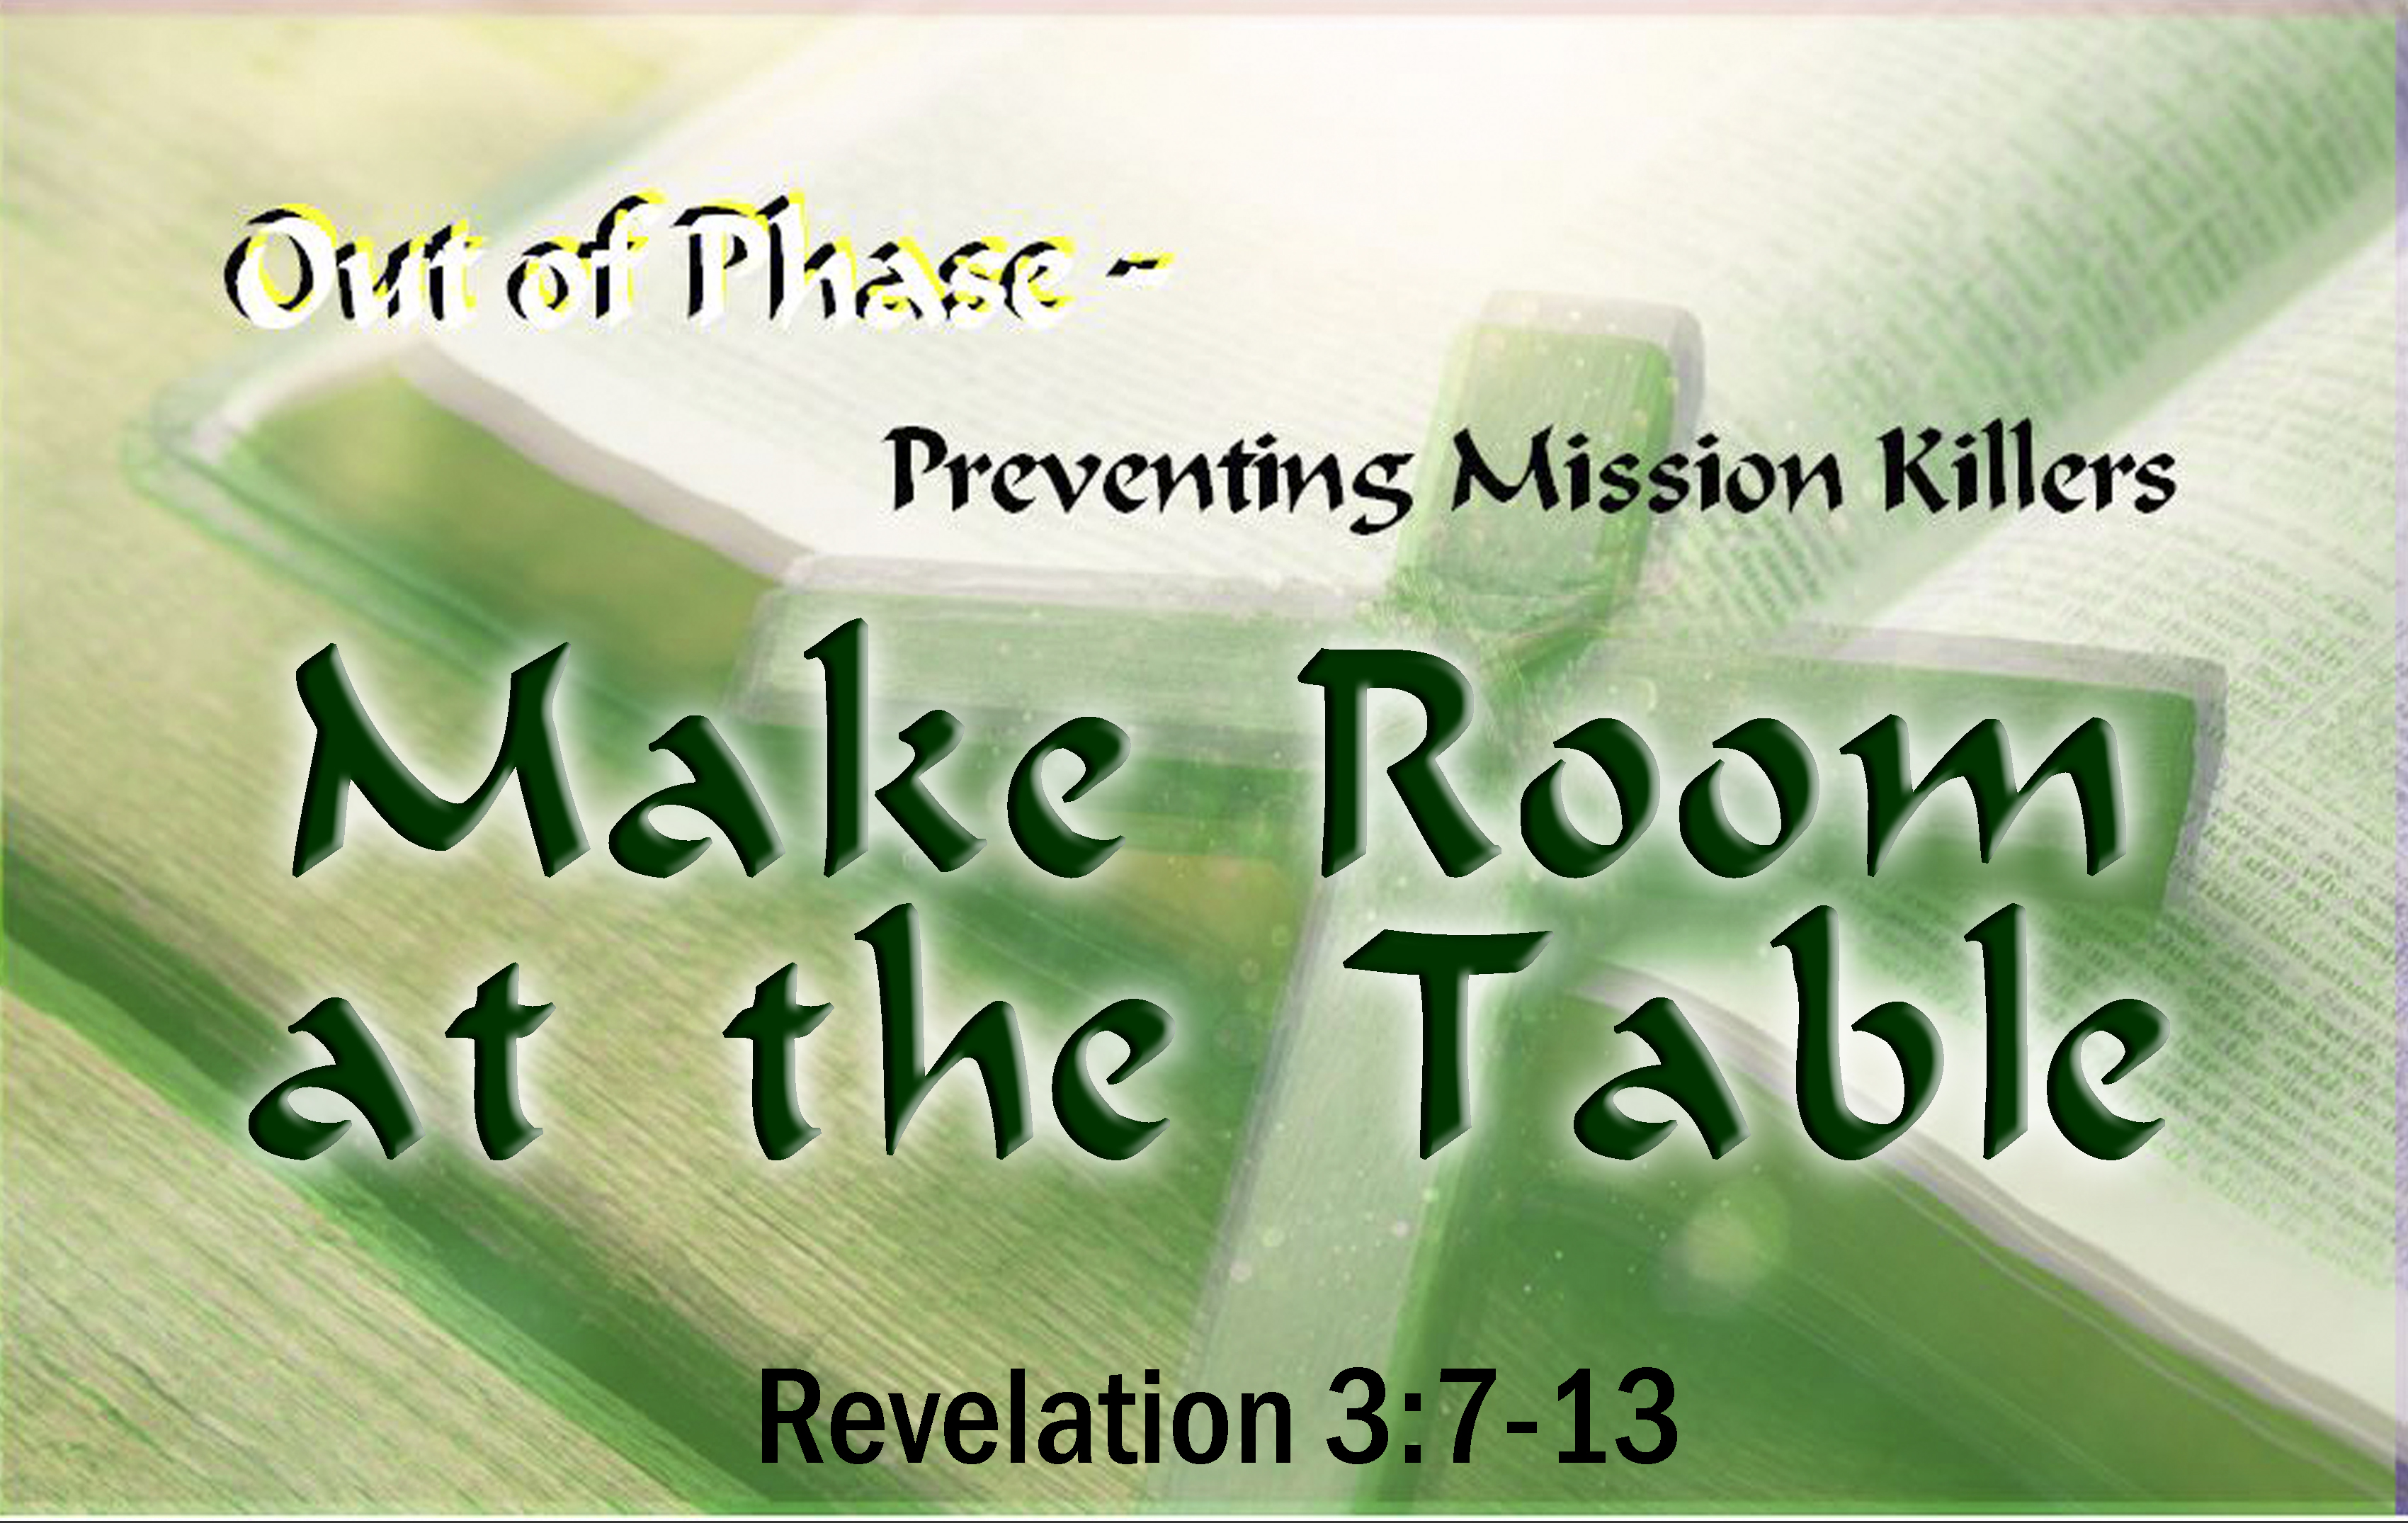 Make Room at the Table